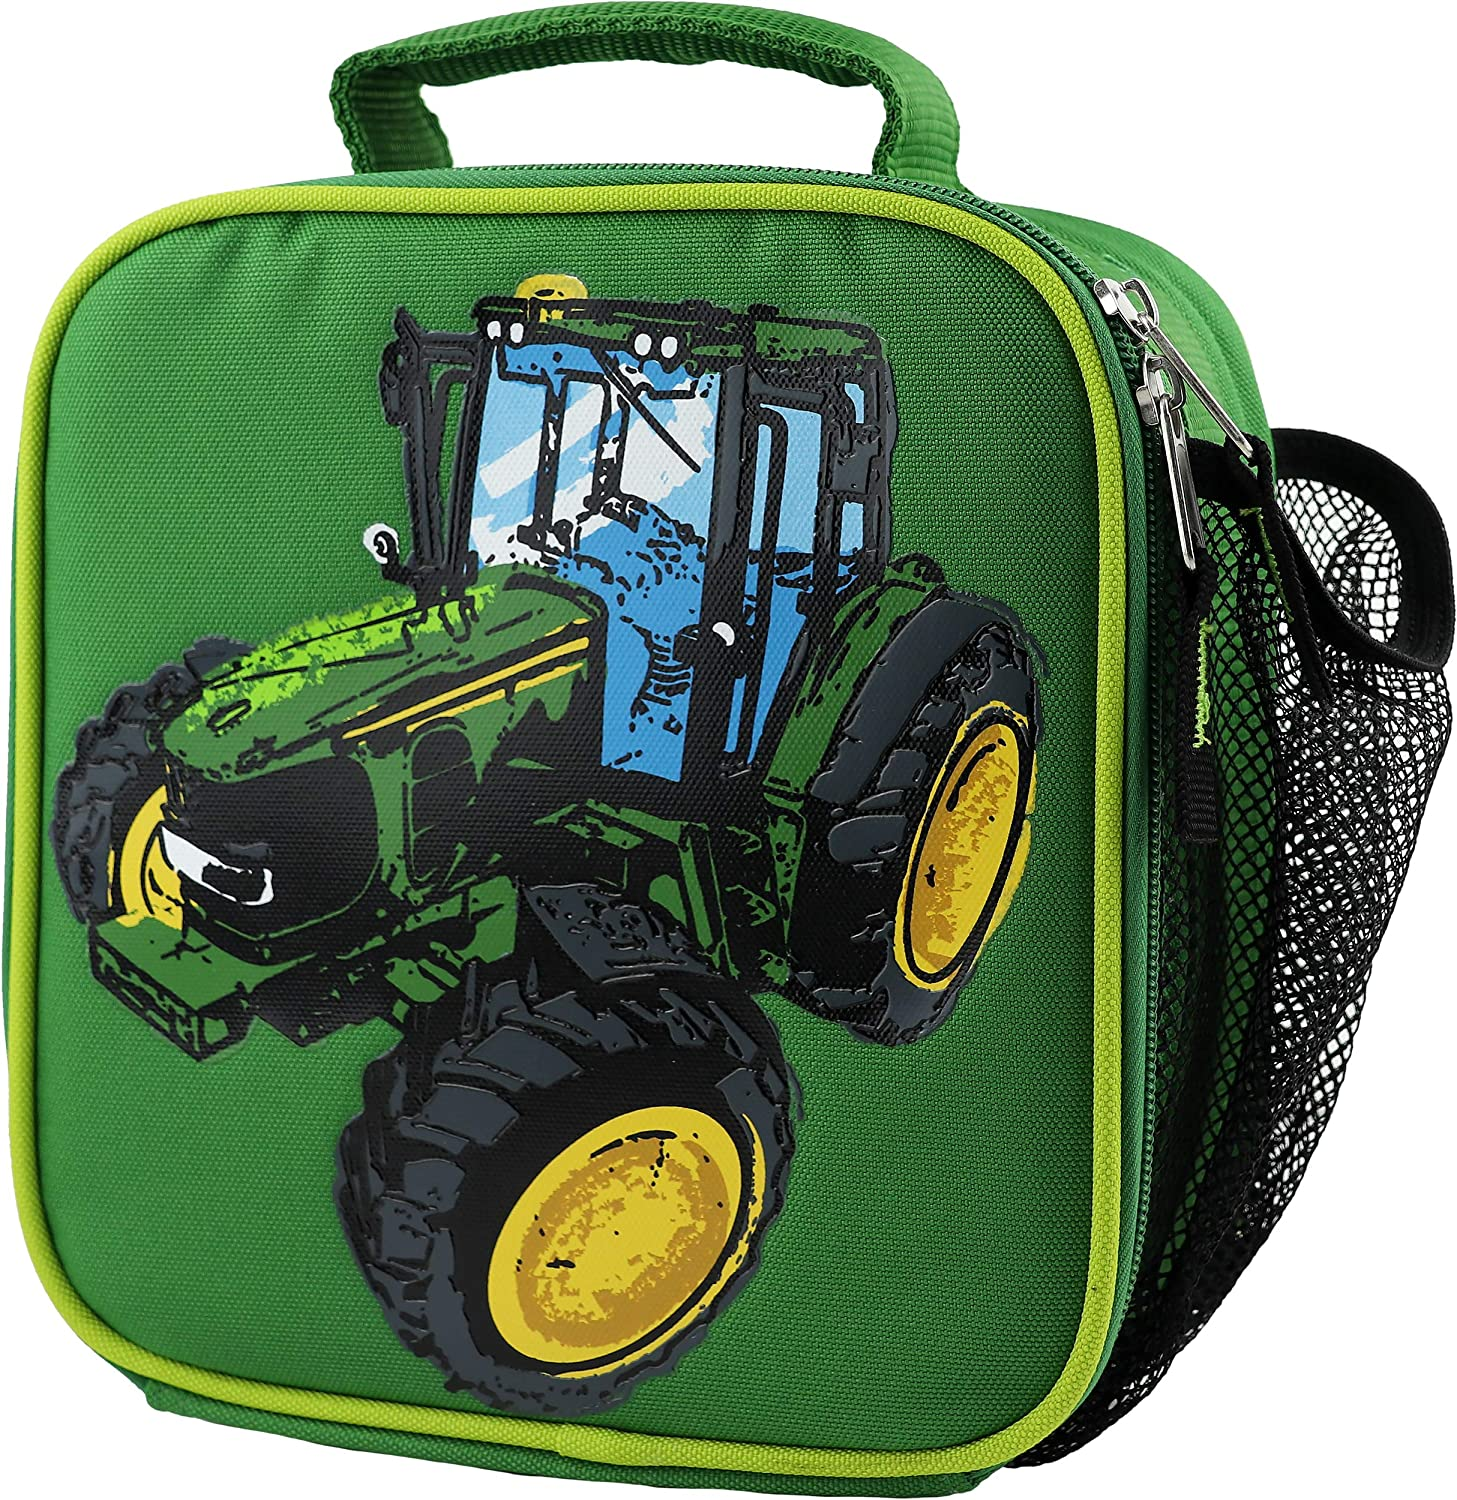 John Deere Boys' Child Tractor Lunchbox, Green